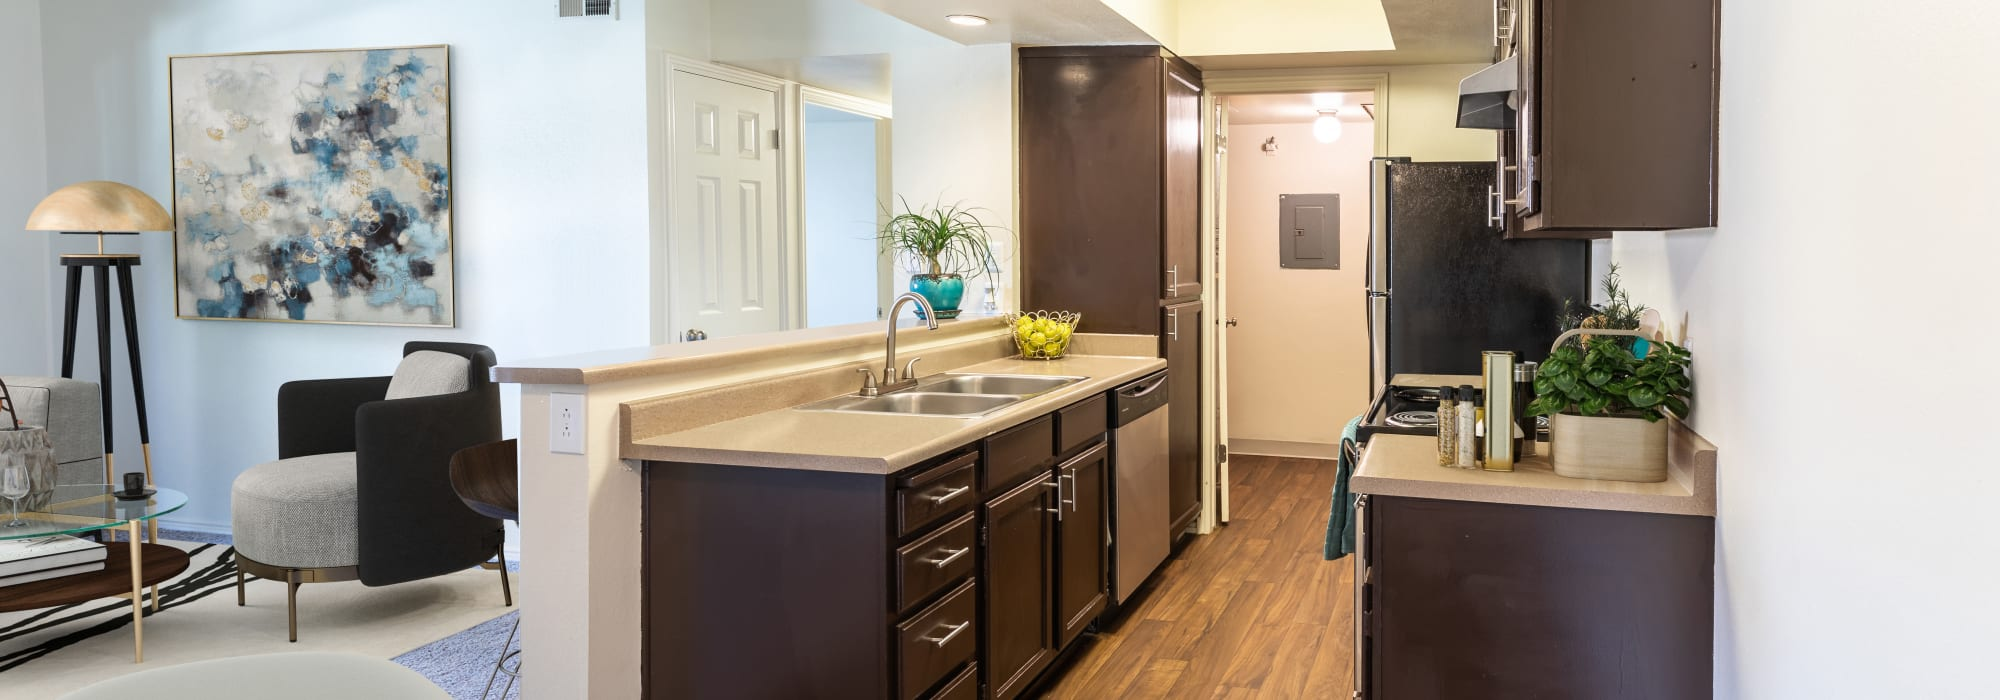 Resident Portal at Shadowbrook Apartments in West Valley City, Utah